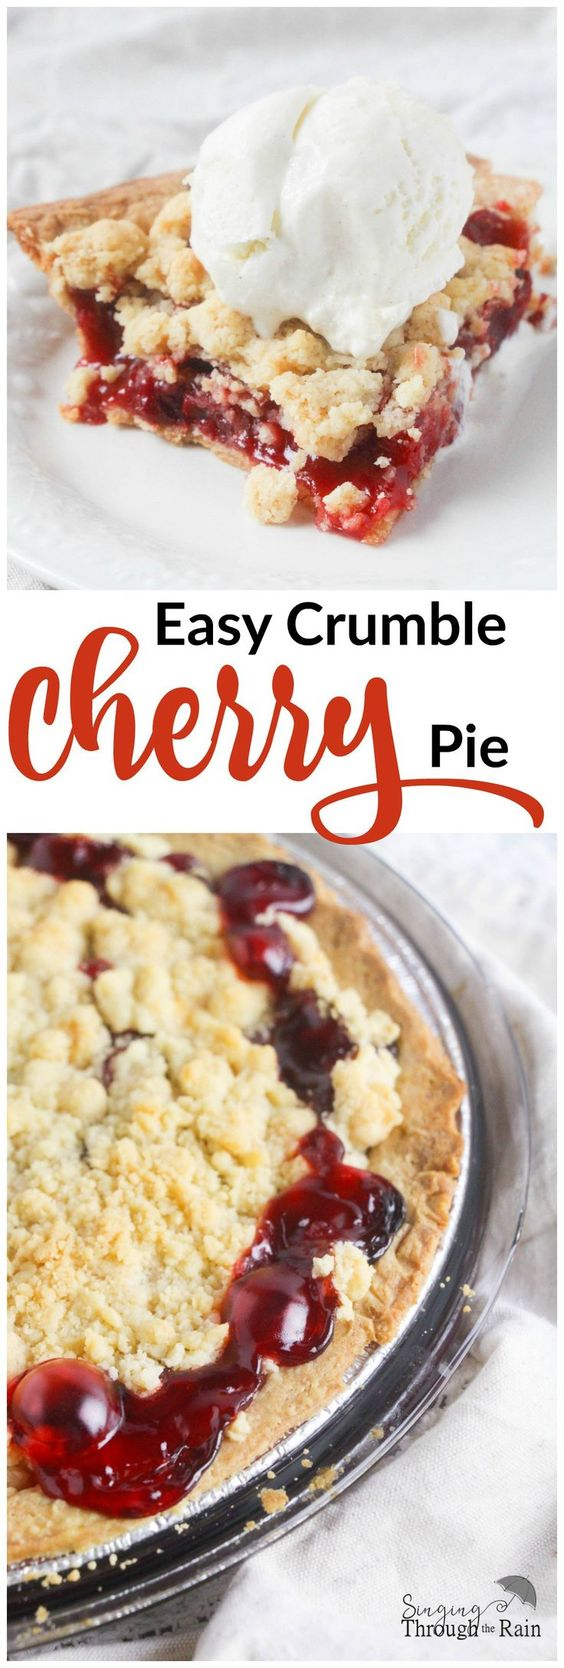 Easy Crumble Cherry Pie - This delicious cherry pie is perfect for the upcoming holidays and even if you aren't the best chef, this easy recipe is sure to wow your friends and family. Bon-Appetit!